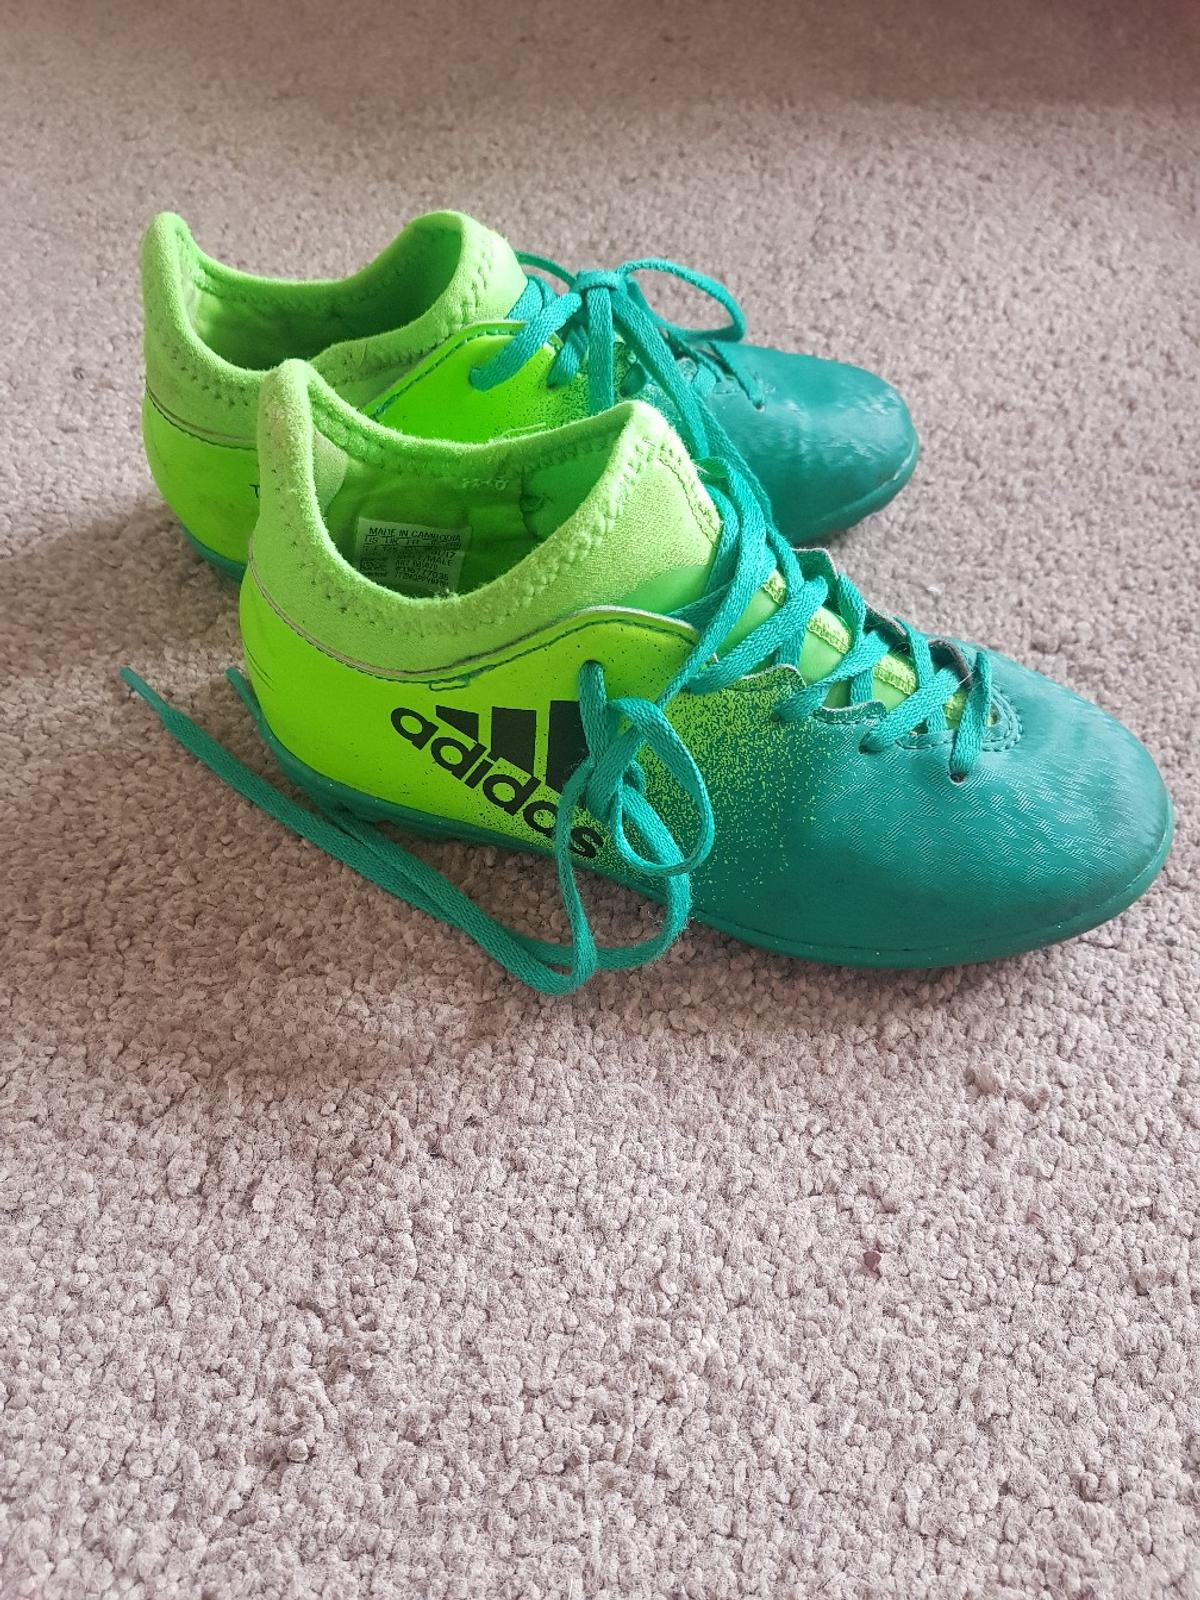 0df8d9f94695 size 12 astro trainers in London Borough of Barking and Dagenham for ...